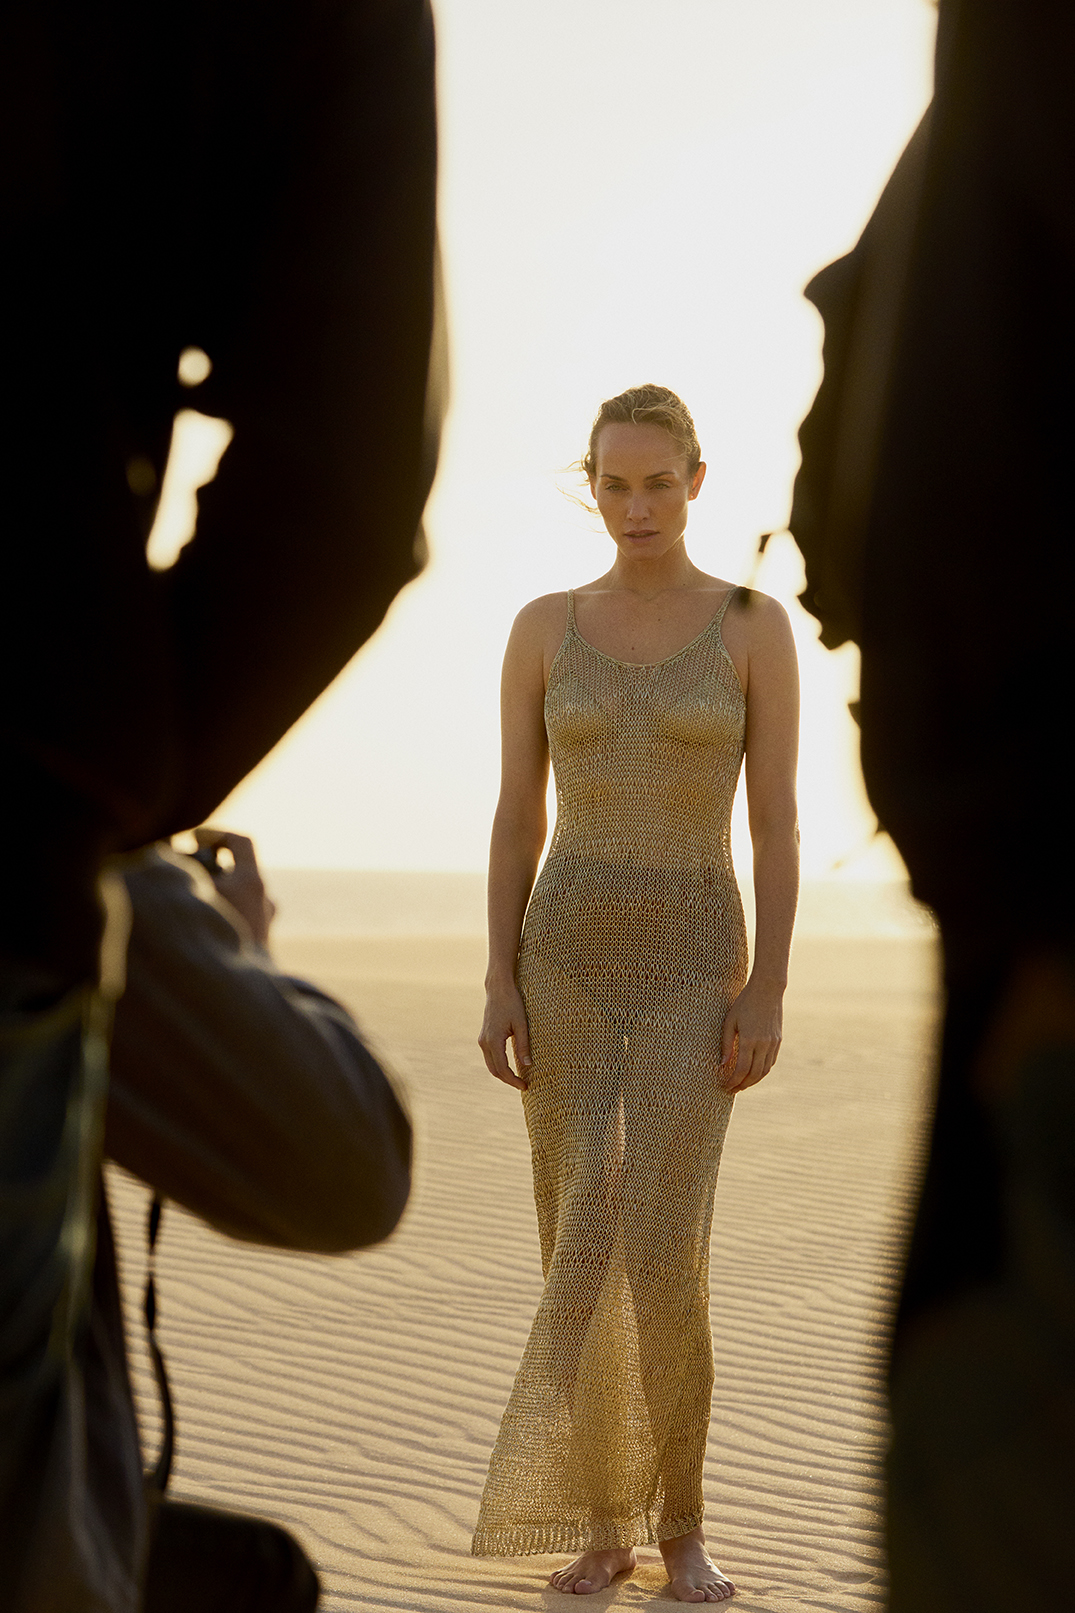 Images Amber Valletta nudes (38 photos), Sexy, Sideboobs, Twitter, braless 2018